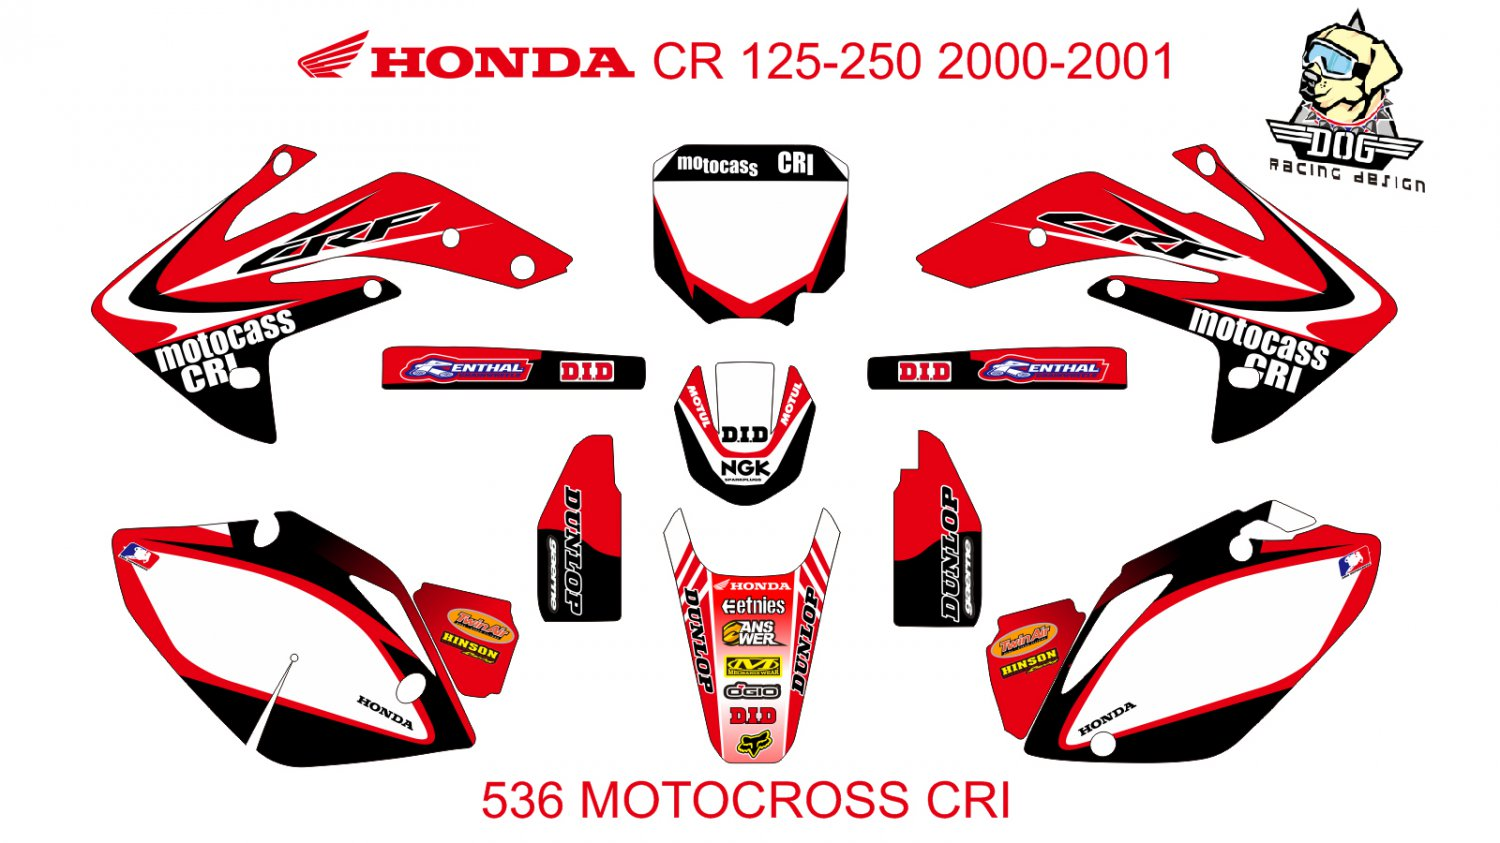 HONDA CR 125-250 2000-2001 GRAPHIC DECAL KIT CODE.536